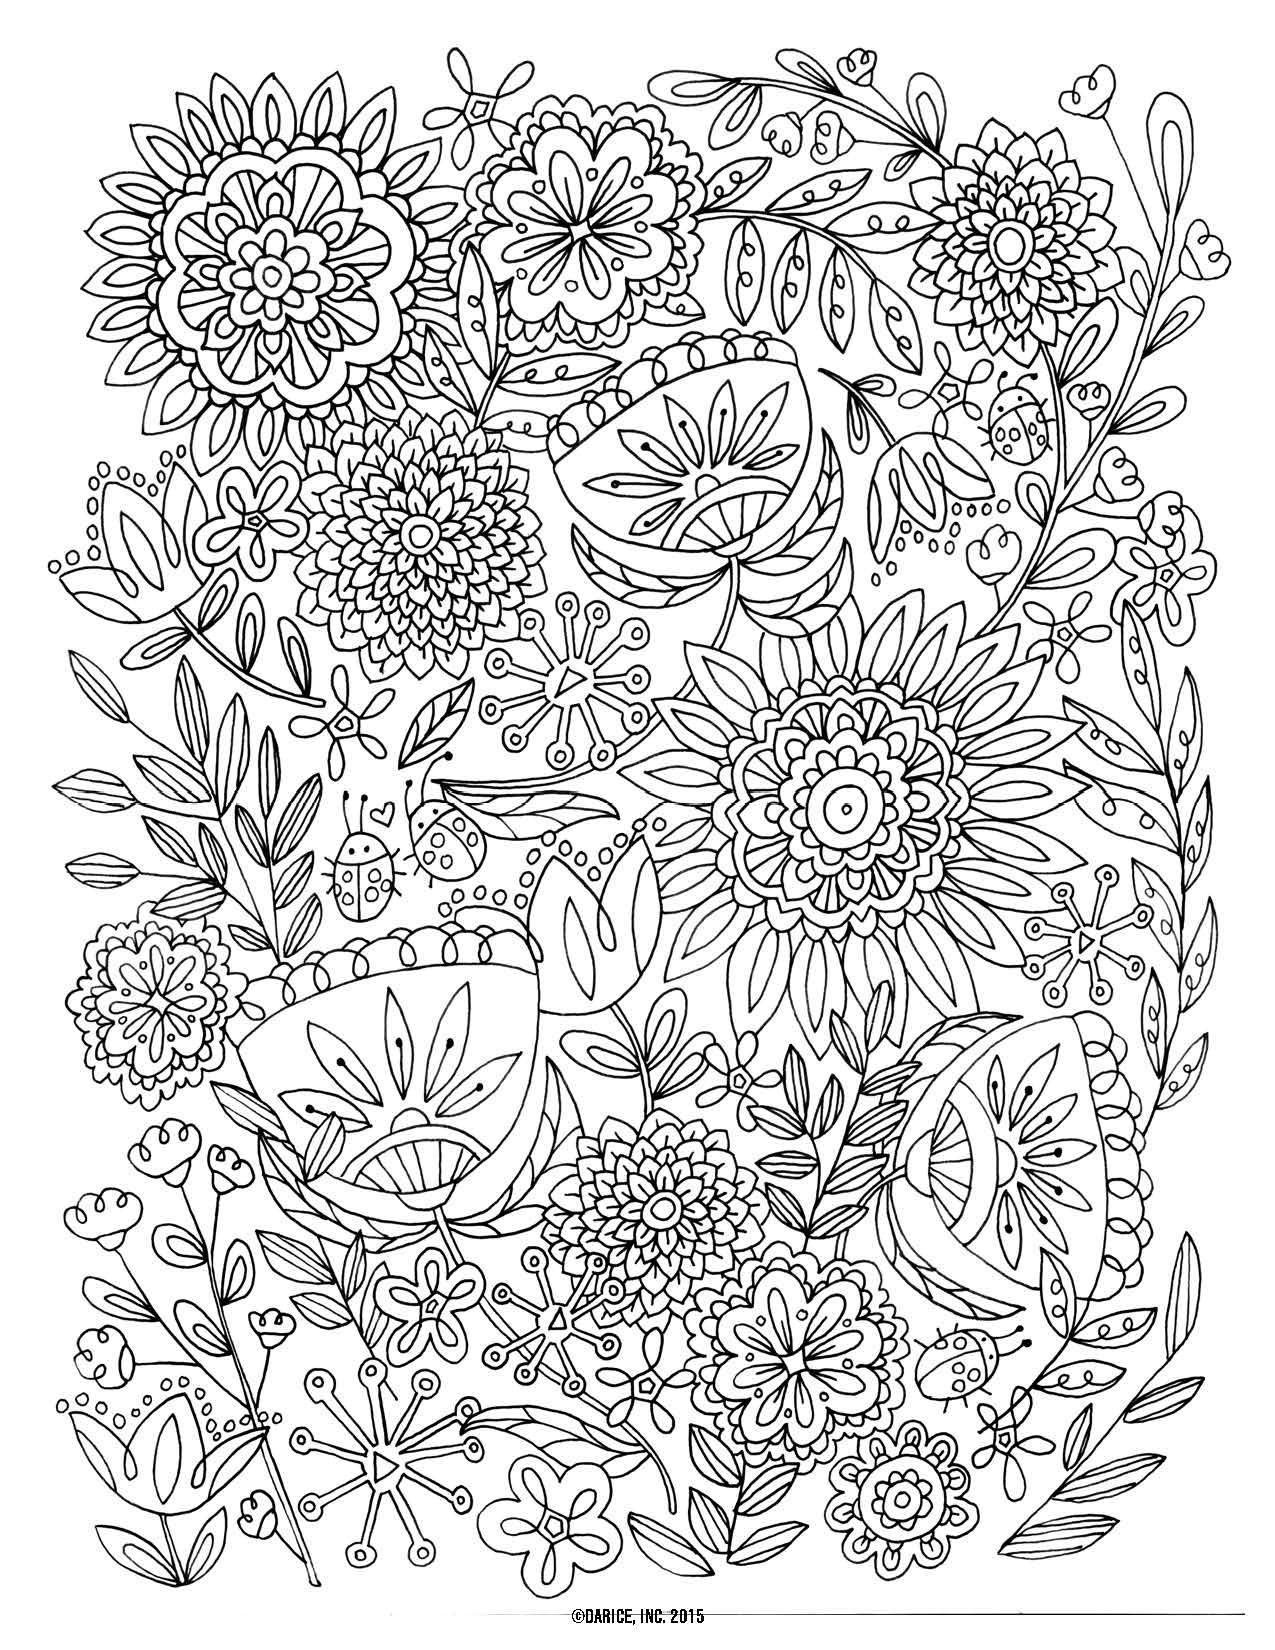 Herbs Coloring Pages Collection to Print Of Blooming Herbs Coloring Page Ultra Coloring Pages Download